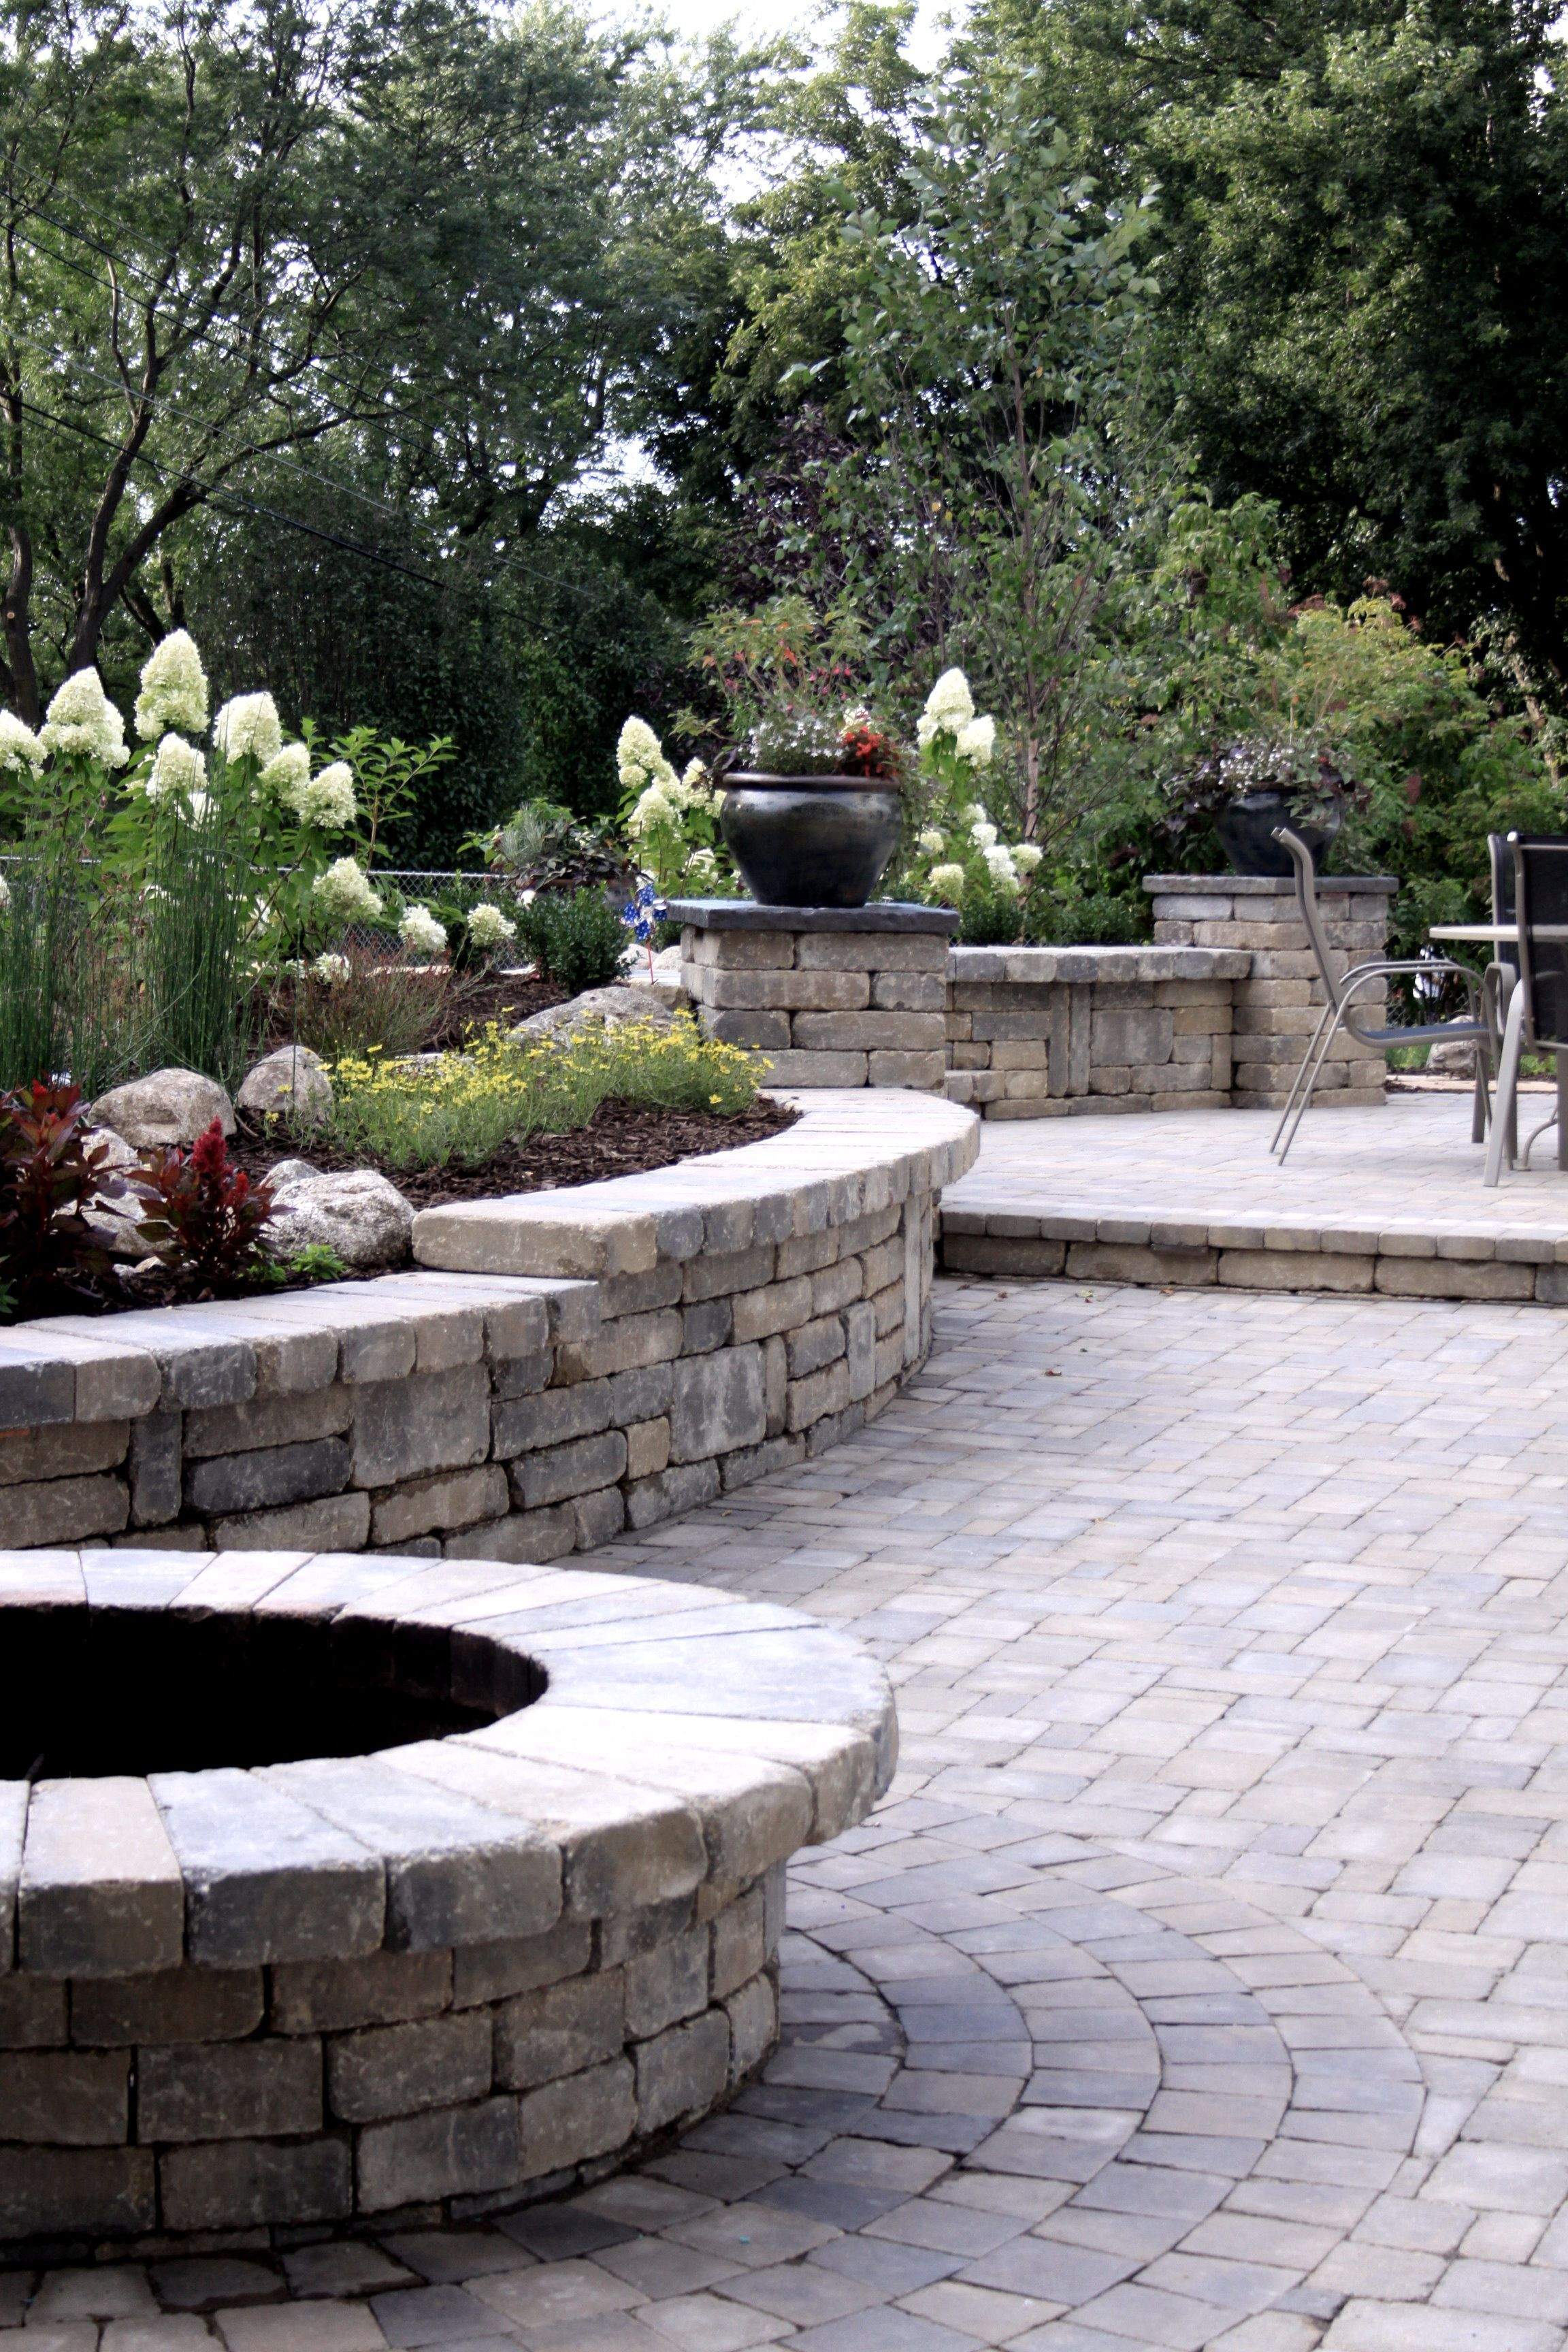 Multiple Outdoor Living Spaces Separated On A Split Level Stone Patio.  Stone Fire Pit Is Edged By A Matching Retaining Wall With Landscaping That  Doubles As ...